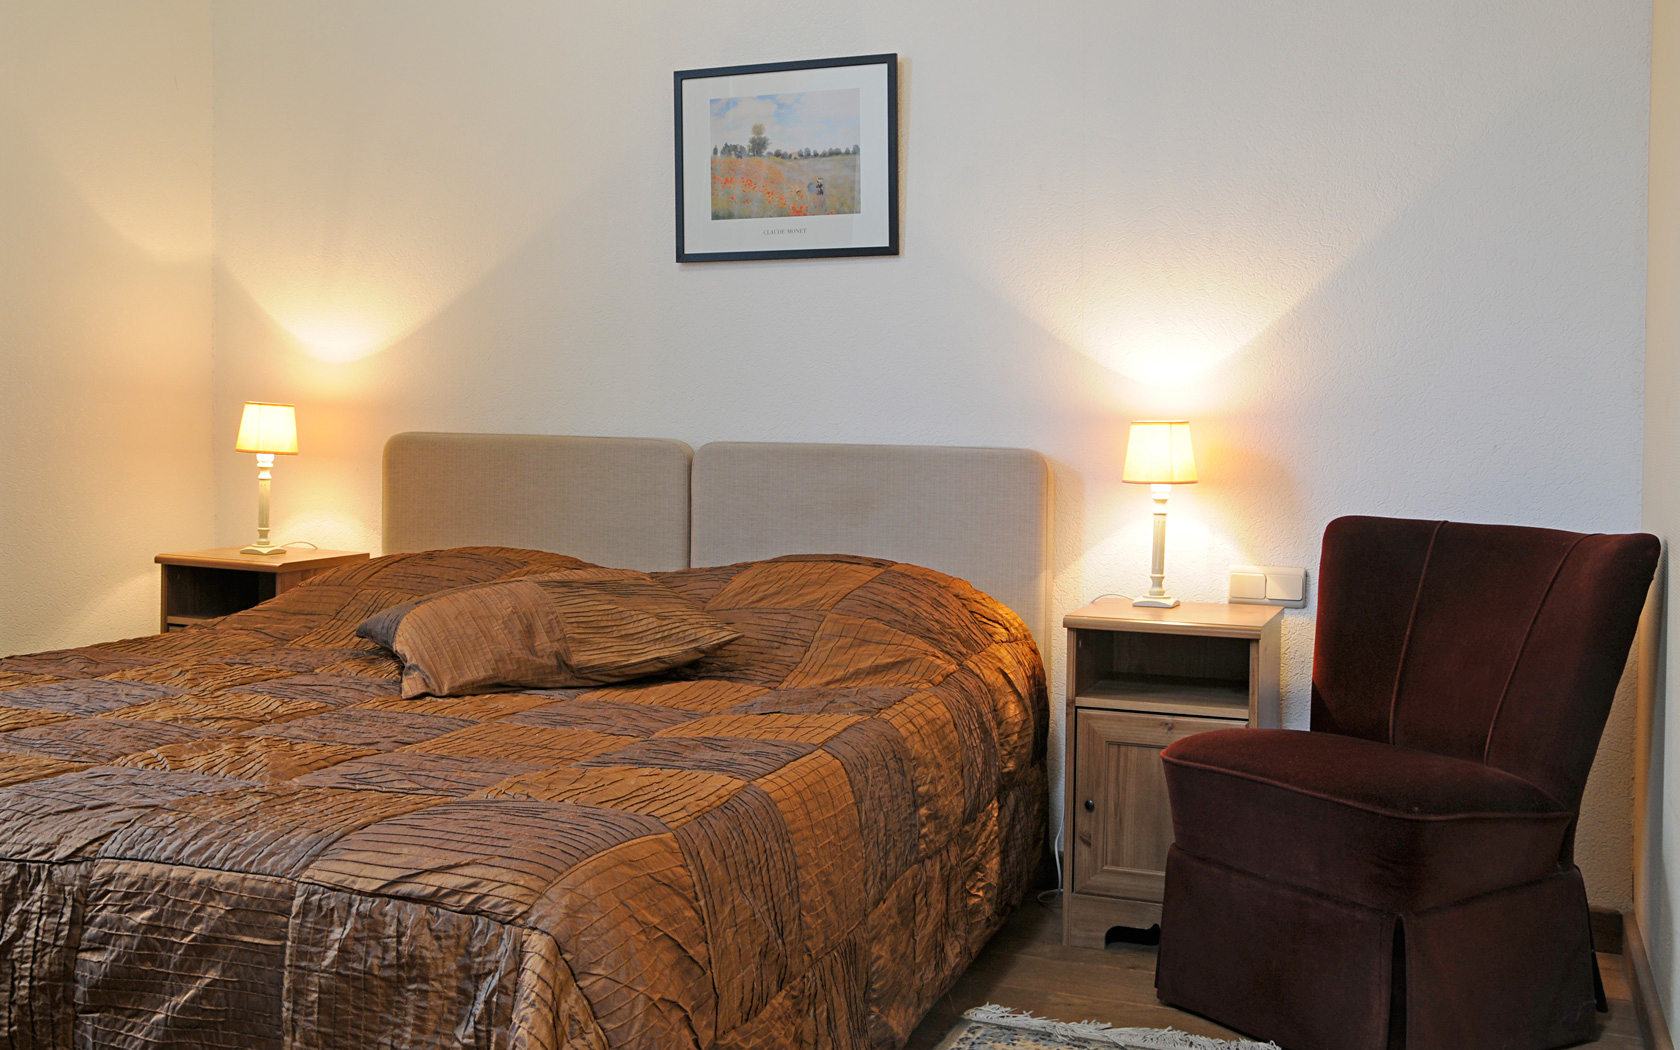 beausejour_hotel_08